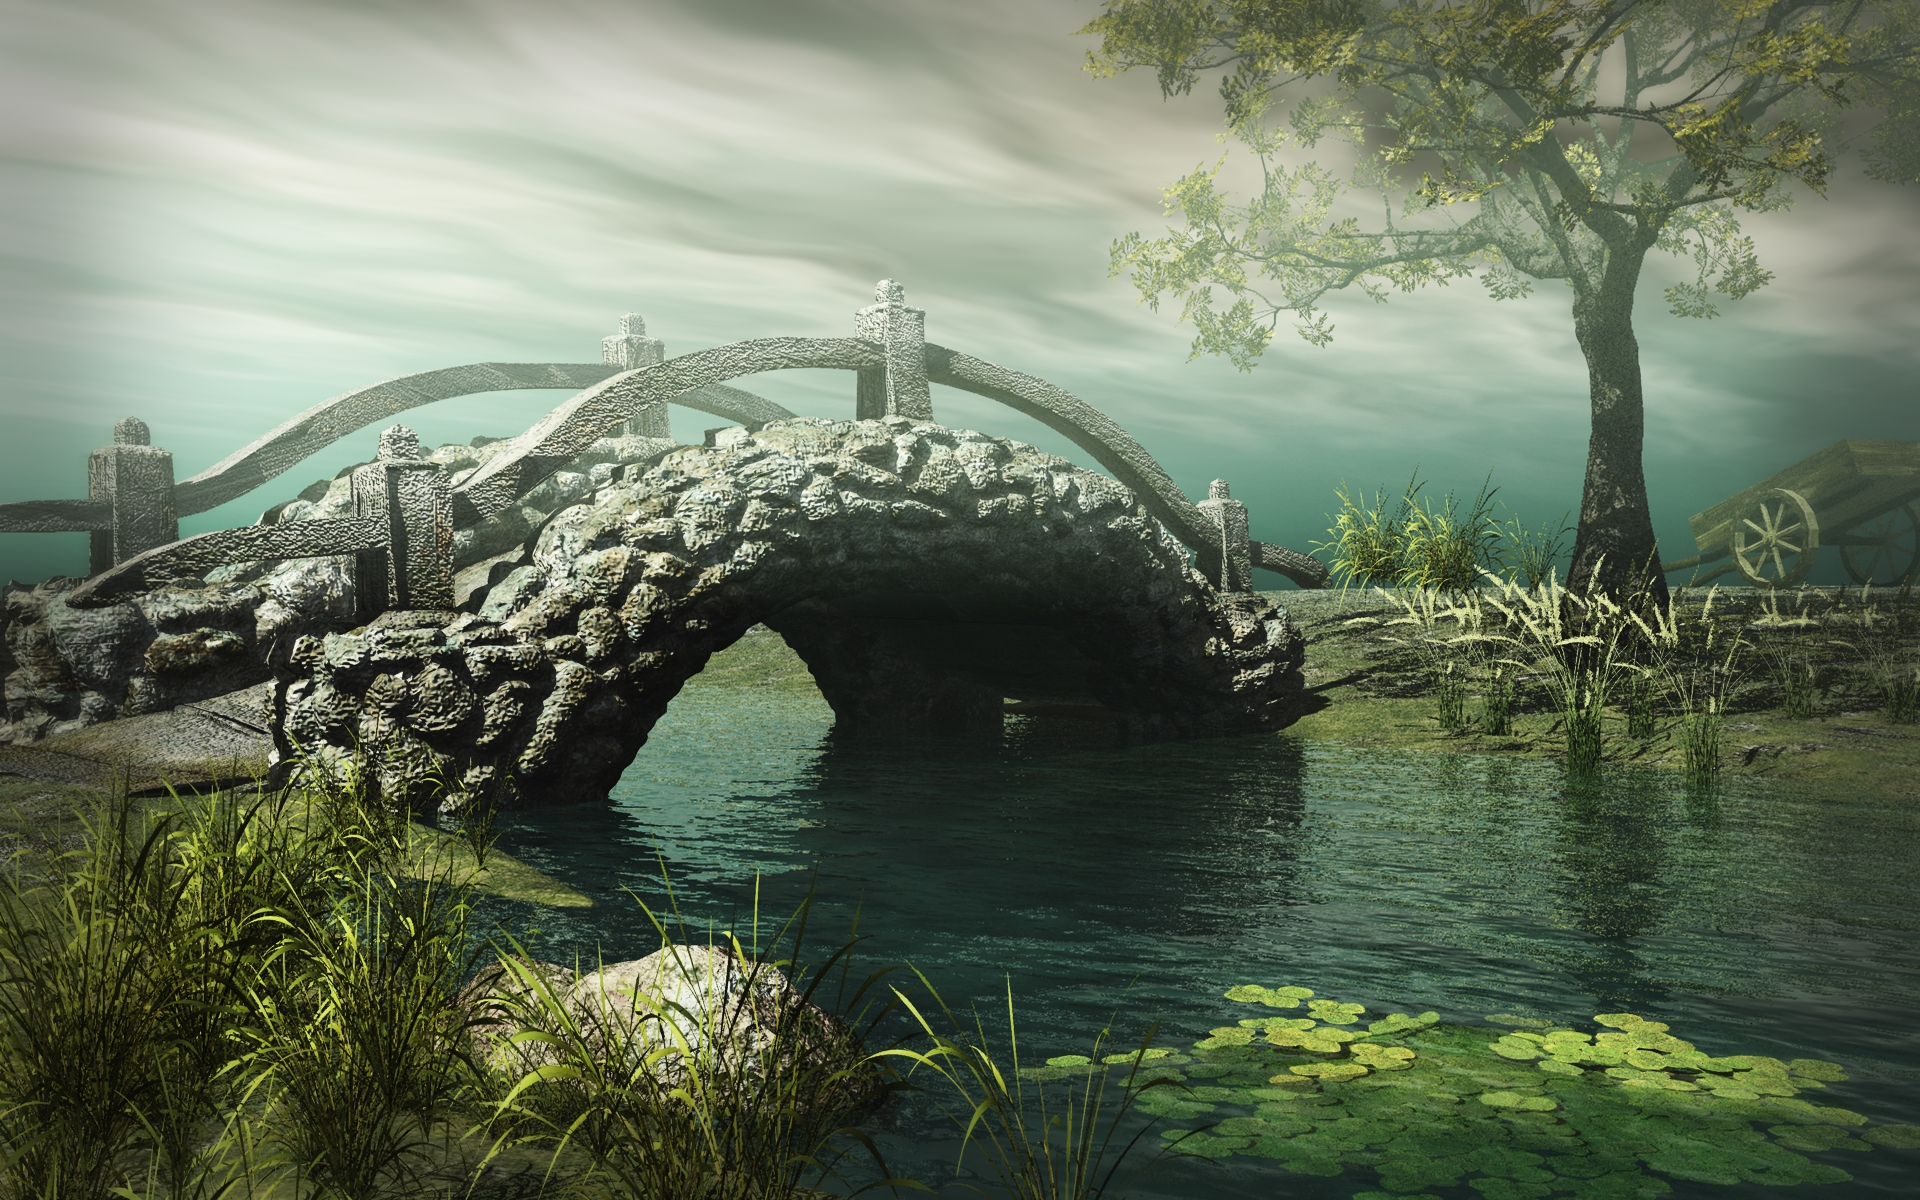 Old Bridges Wallpaper - WallpaperSafari